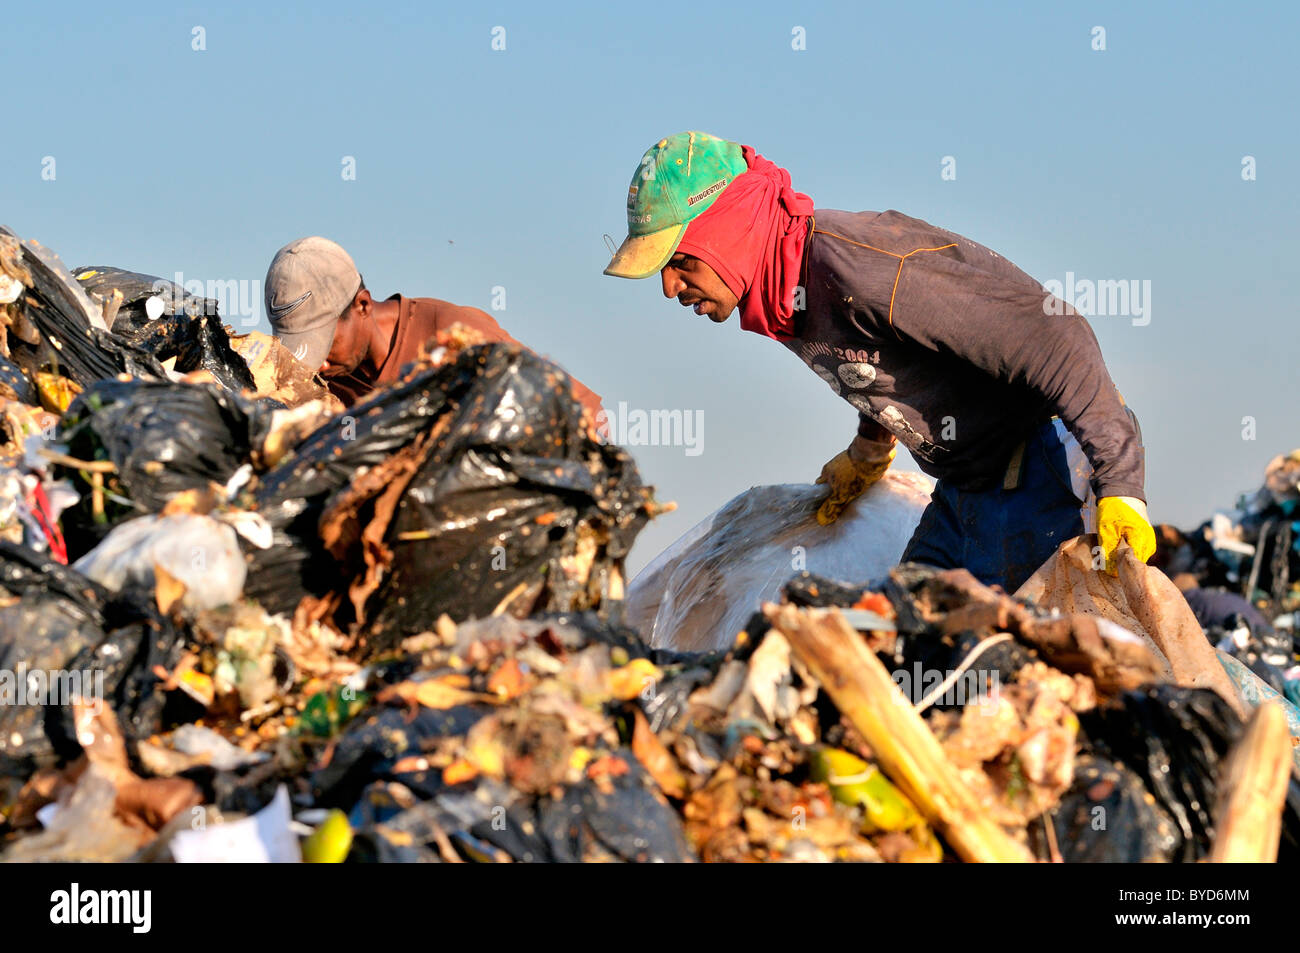 People in search of recyclables at Lixao dump in the satellite city of Estrutural near Brasilia, Distrito Federal, - Stock Image